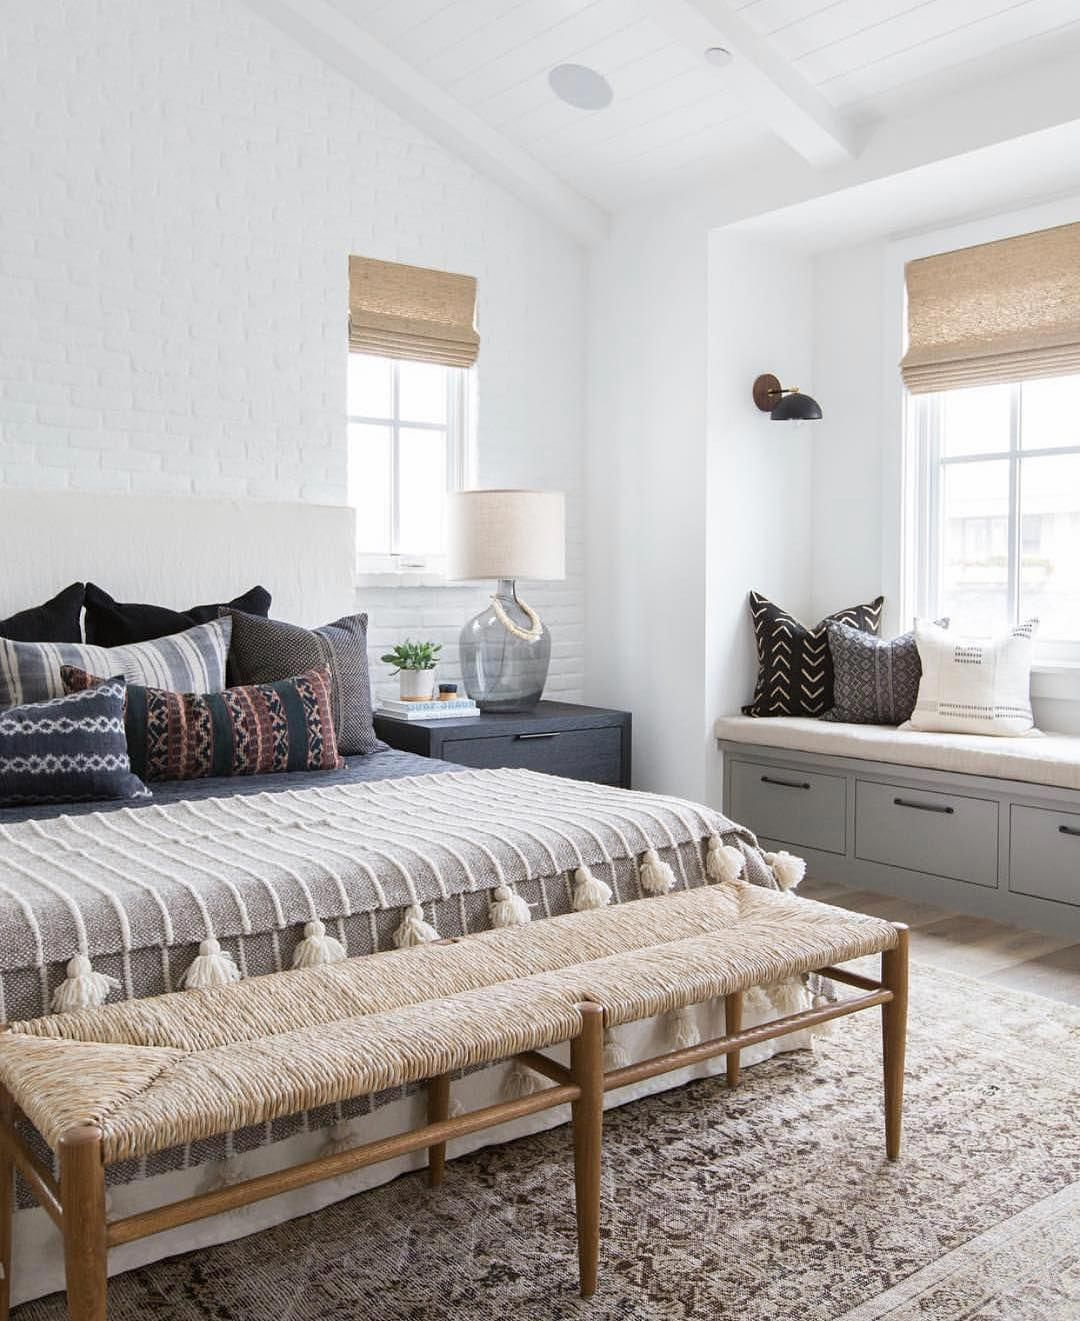 7 GRAY BEDROOM IDEAS THAT PROVE THE COOL NEUTRAL CAN FEEL